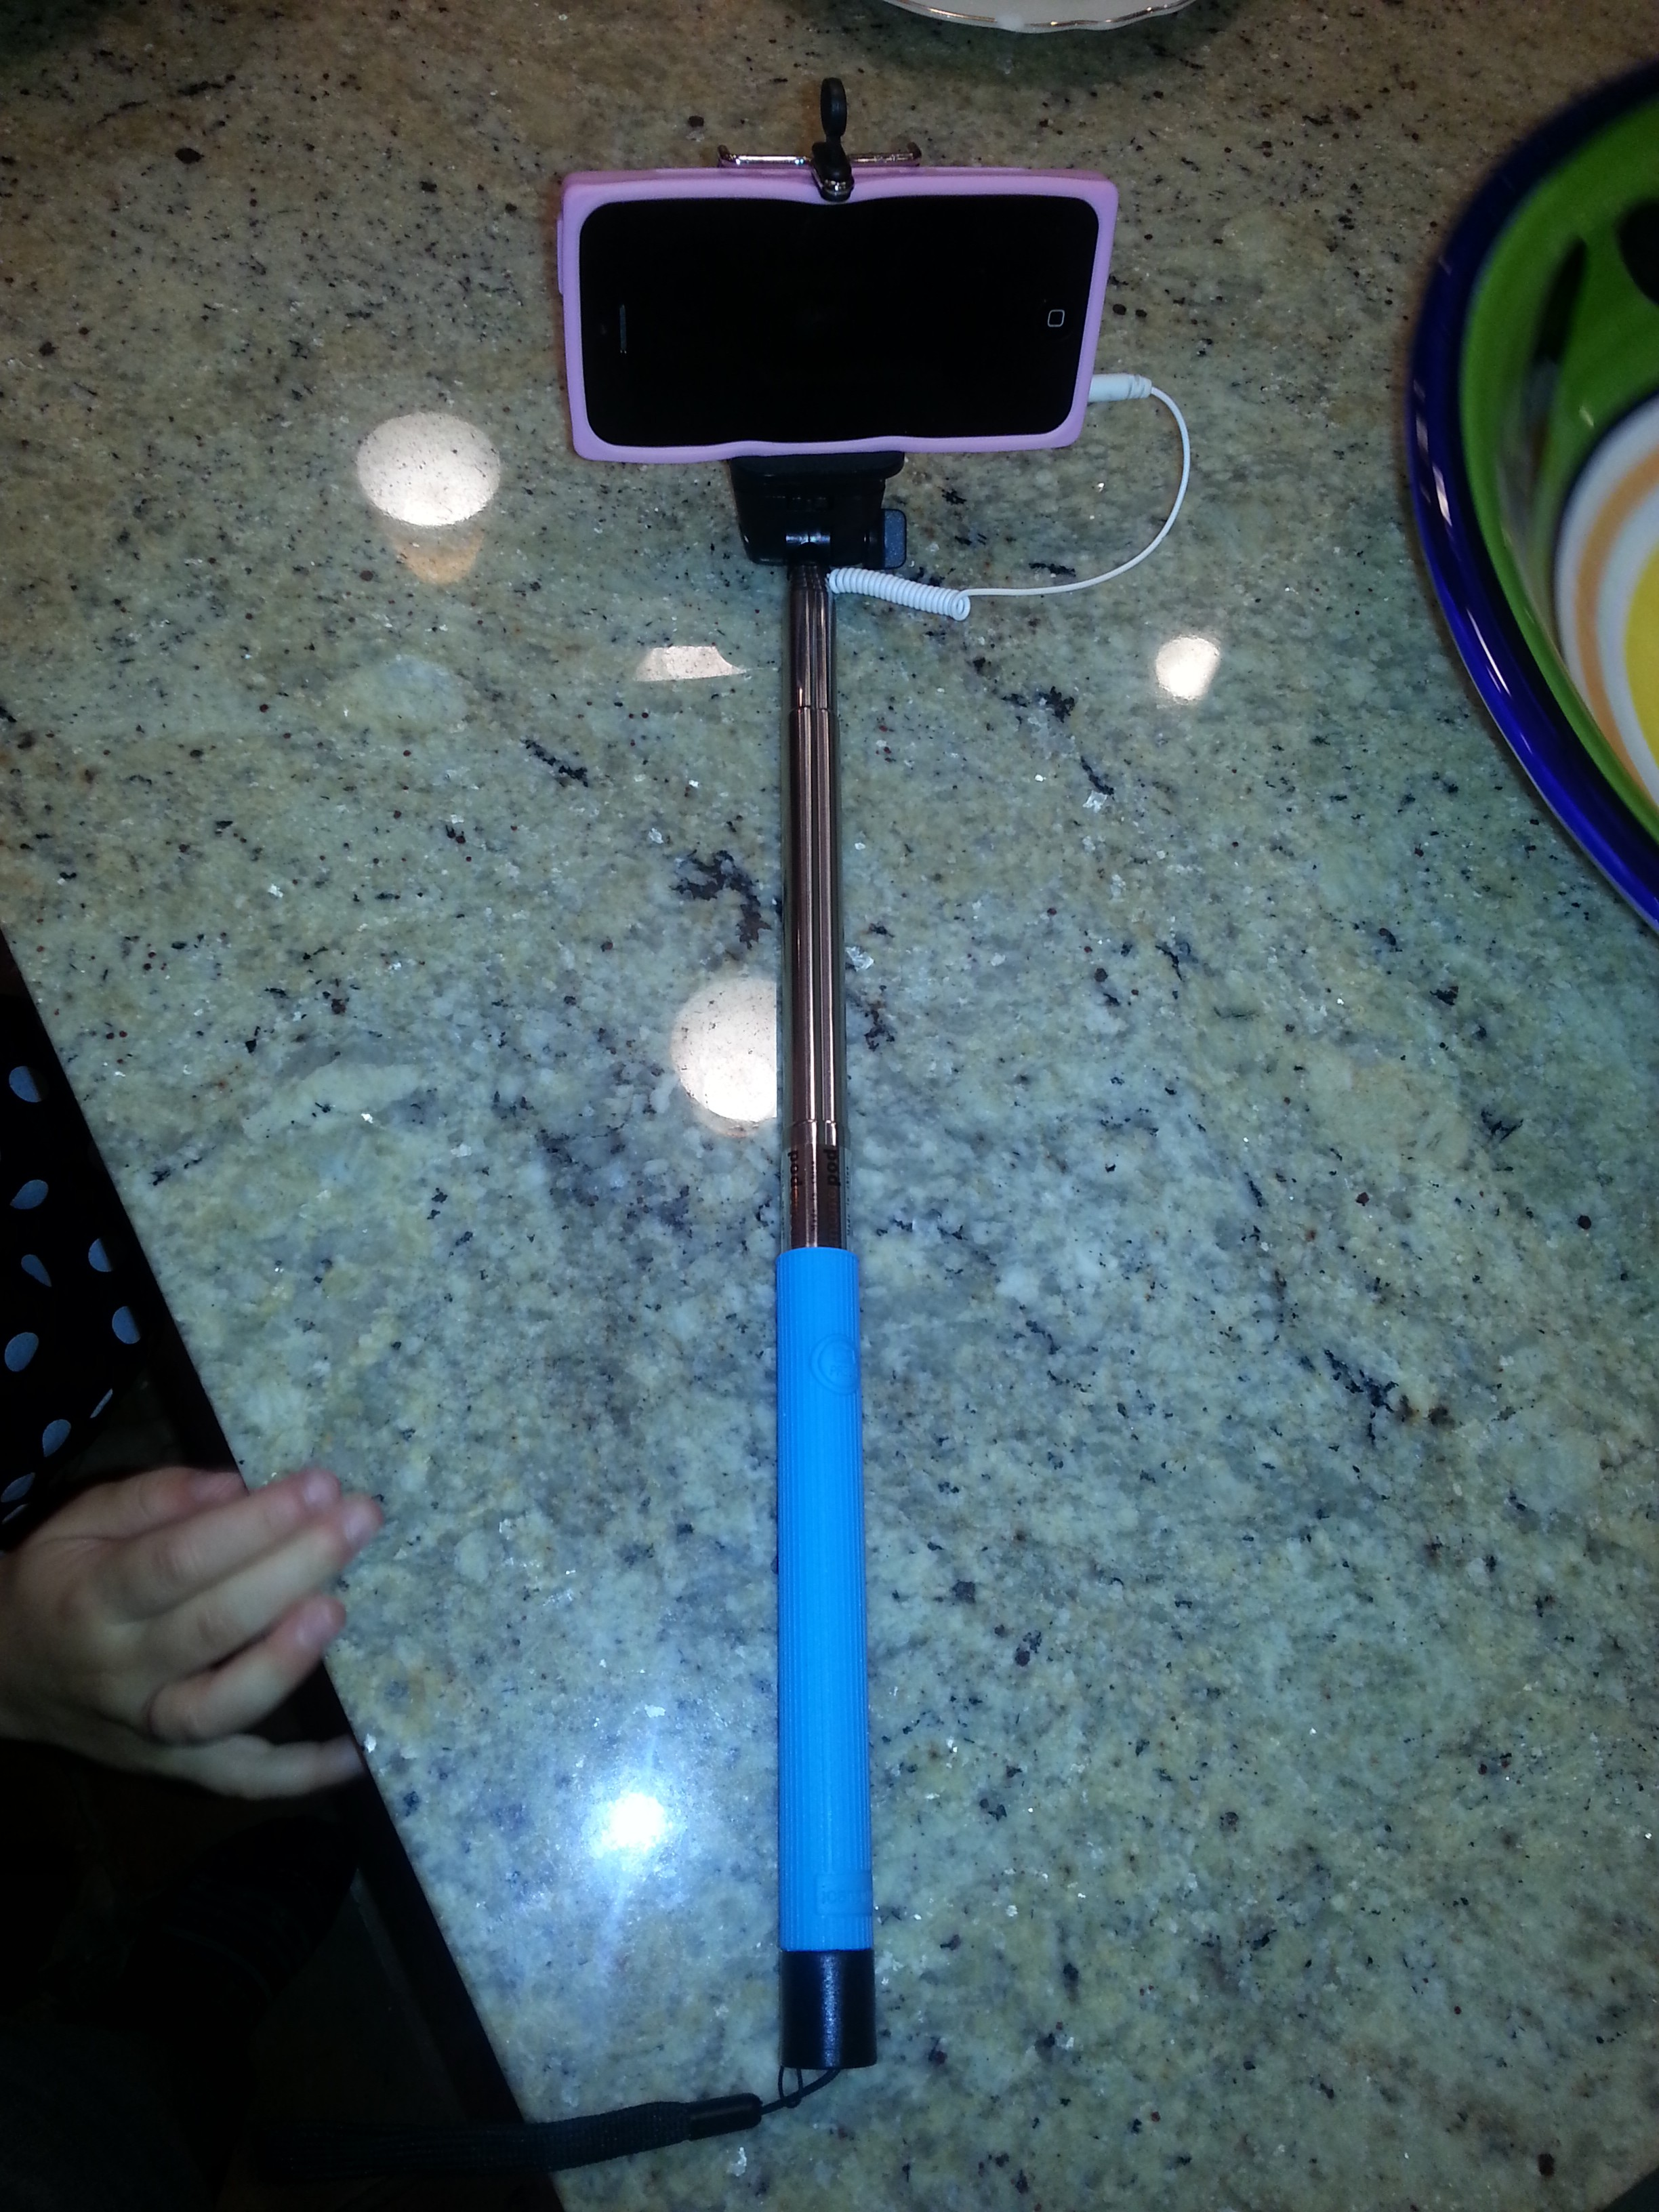 A selfie stick with an iPhone loaded into the clamp.  This selfie stick uses a headphone jack to connect the phone with the buttons on the handle.